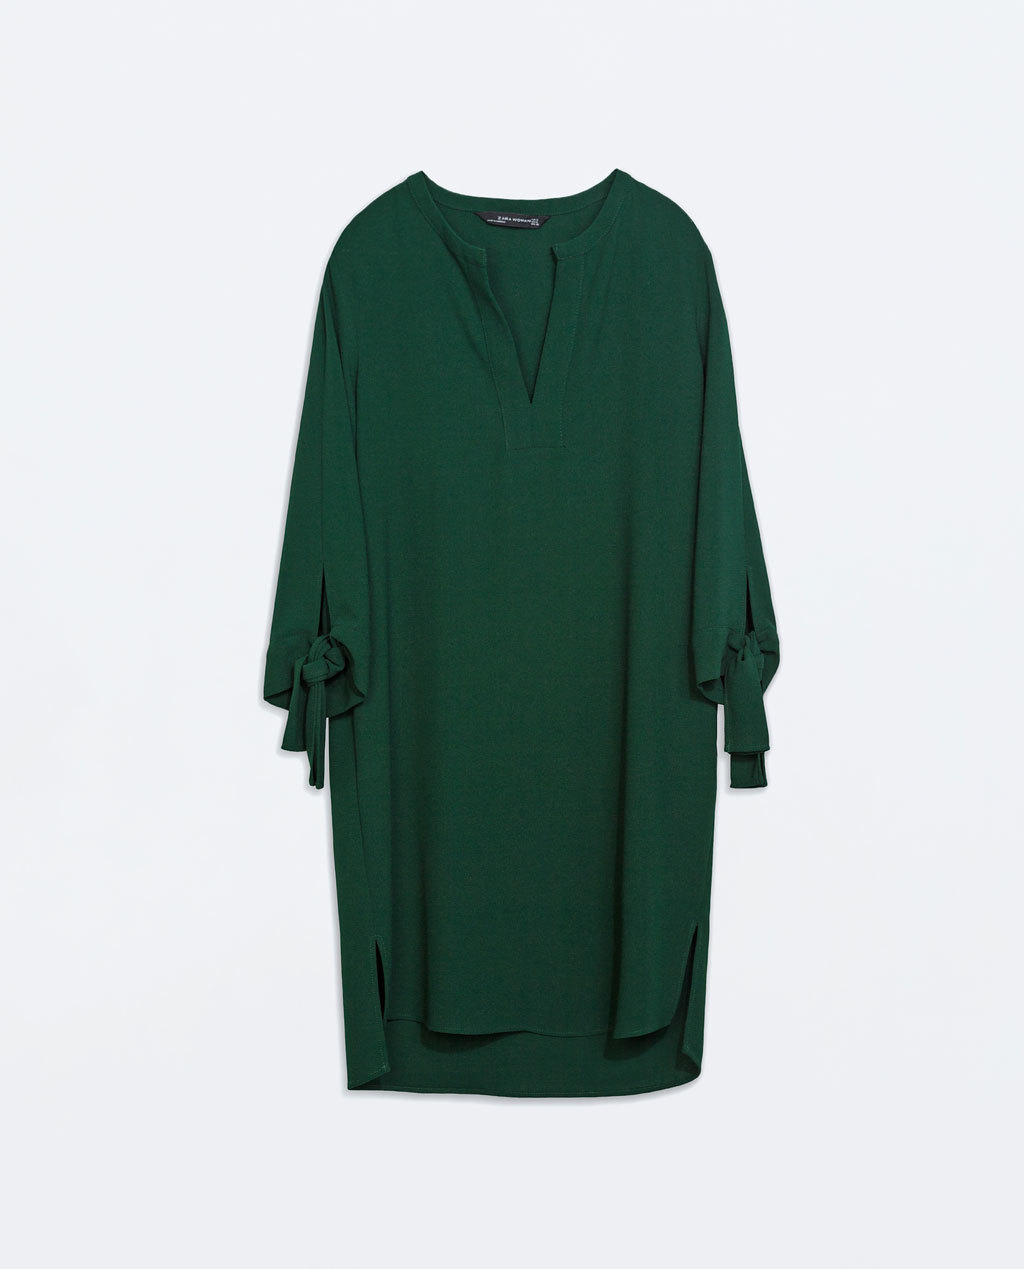 Tie Sleeve Tunic - style: tunic; length: mid thigh; fit: loose; pattern: plain; predominant colour: dark green; occasions: casual, creative work; neckline: collarstand & mandarin with v-neck; fibres: polyester/polyamide - 100%; sleeve length: 3/4 length; sleeve style: standard; texture group: crepes; pattern type: fabric; season: a/w 2014